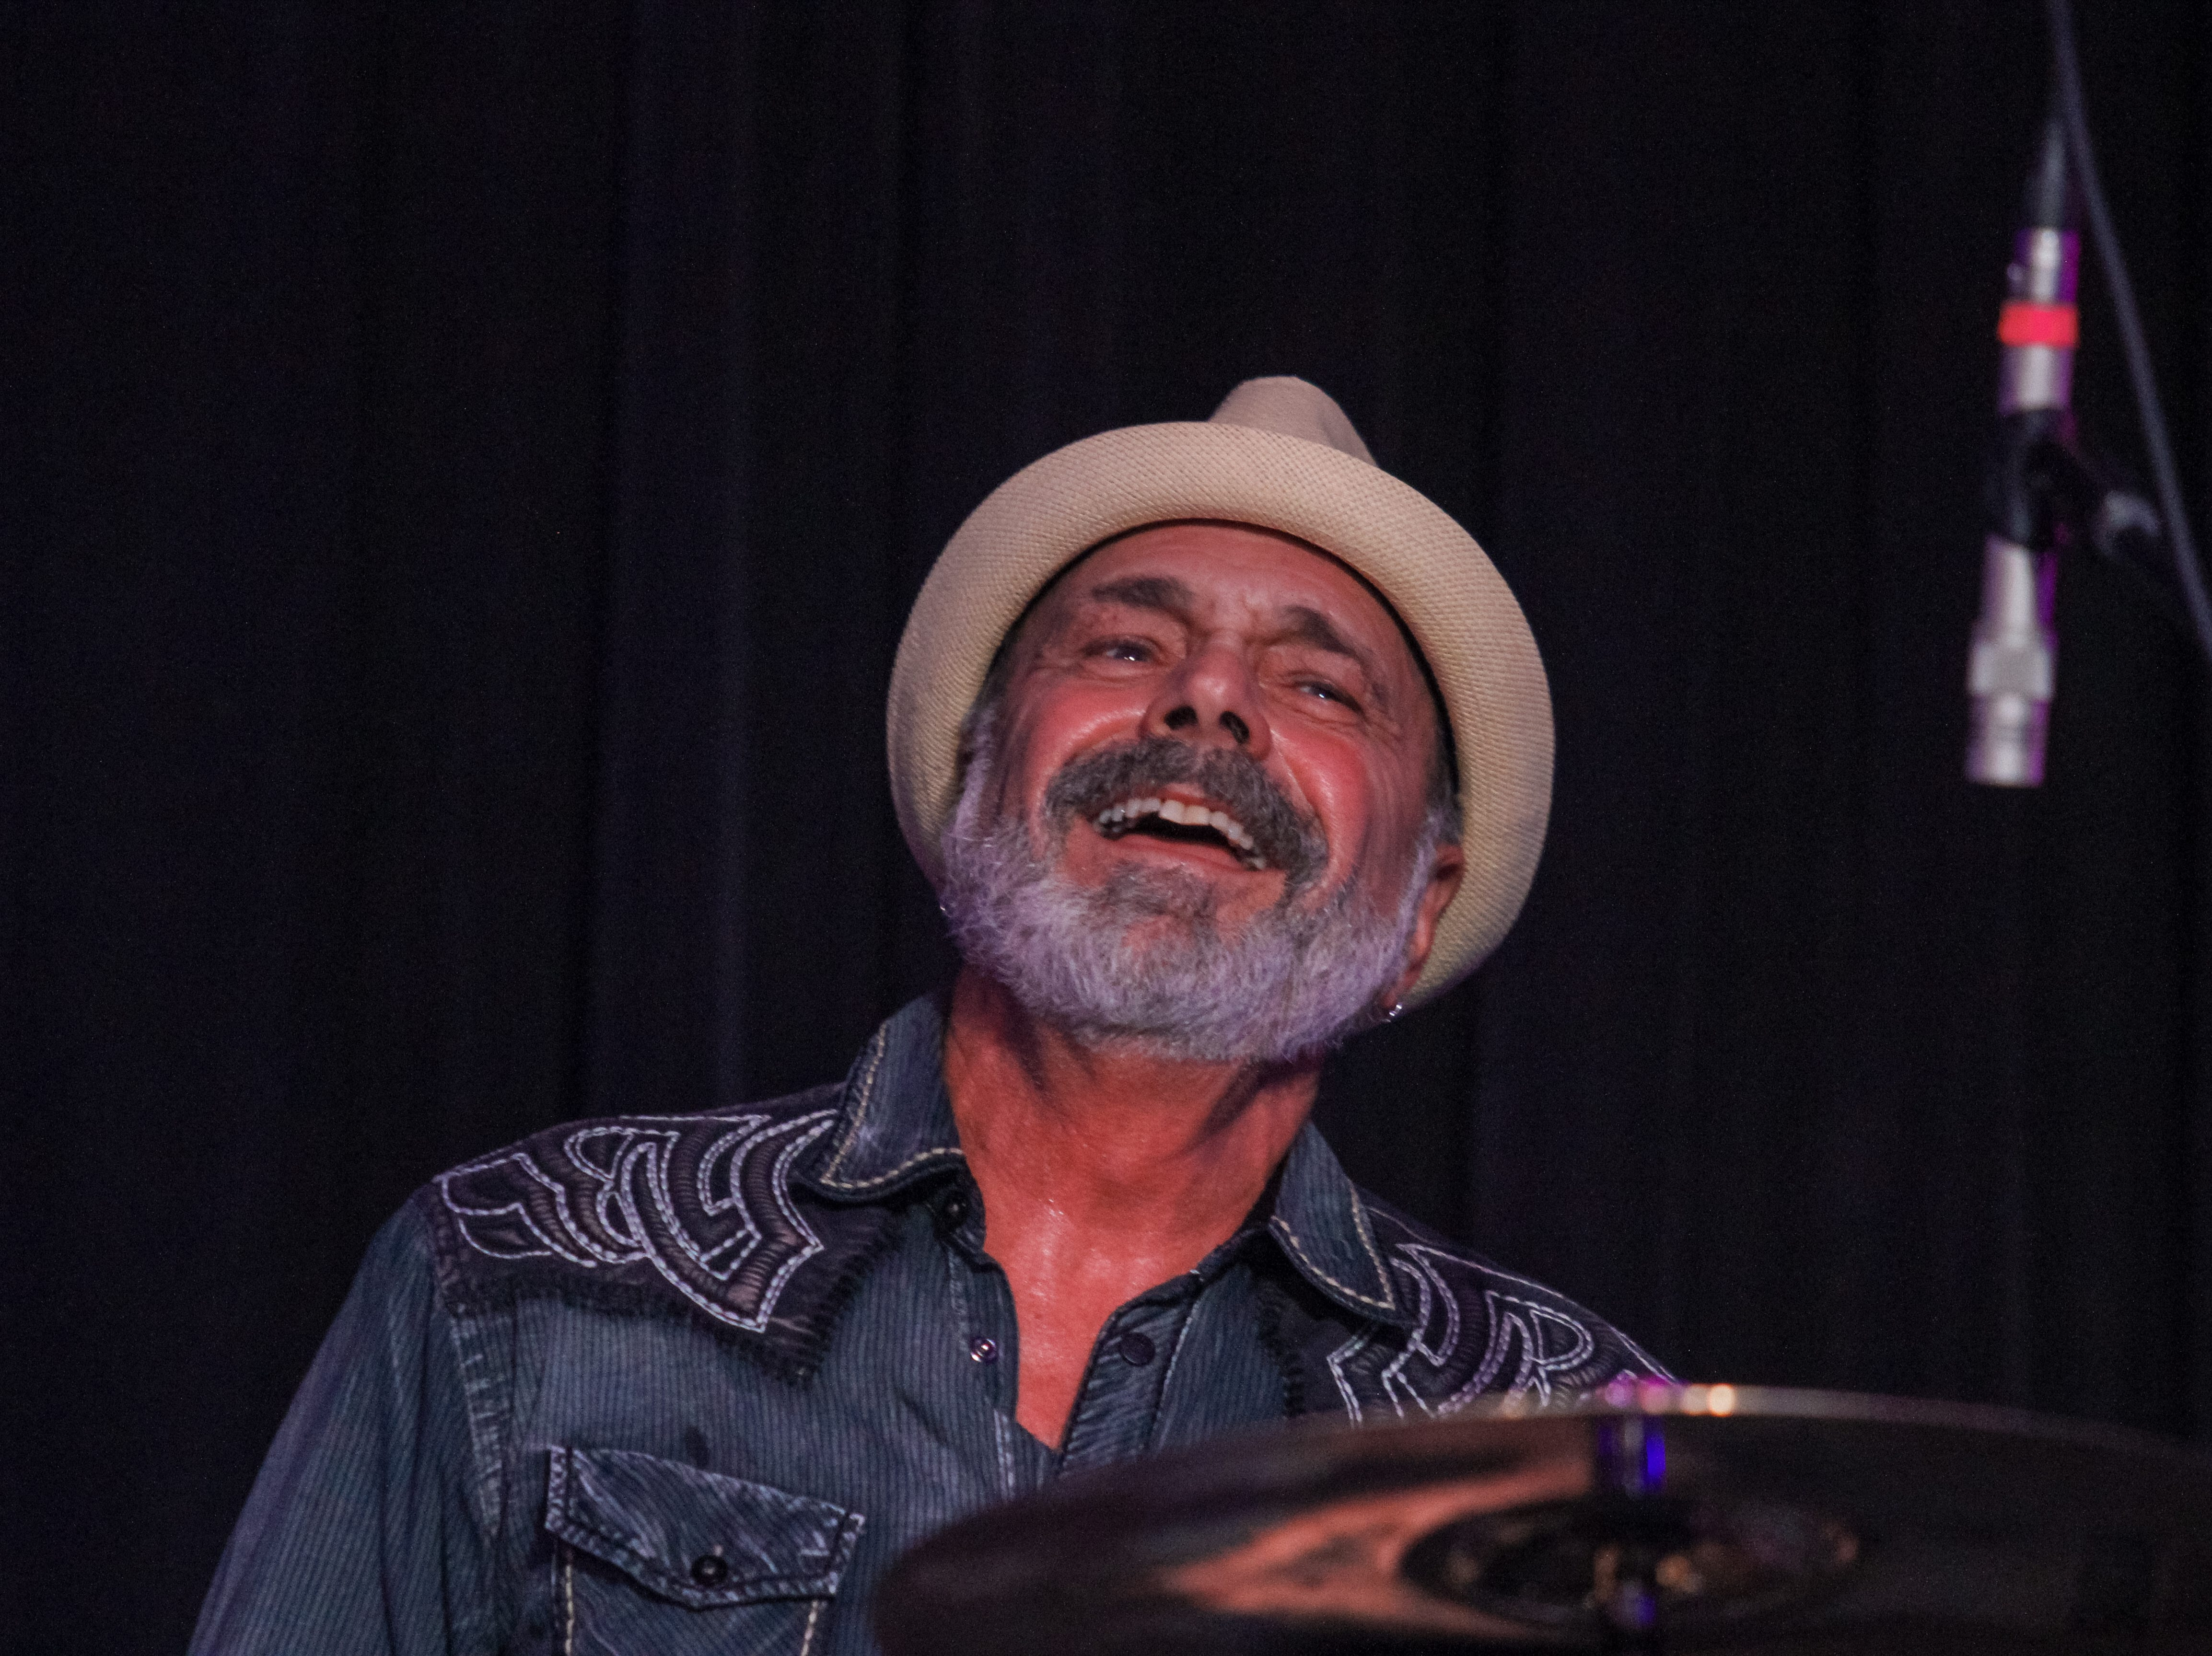 Danny Seraphine of Chicago preforms at Alice Cooper's Rock & Roll Fundraising Bash at the Las Sendas Golf Club in Mesa on April 27, 2019.